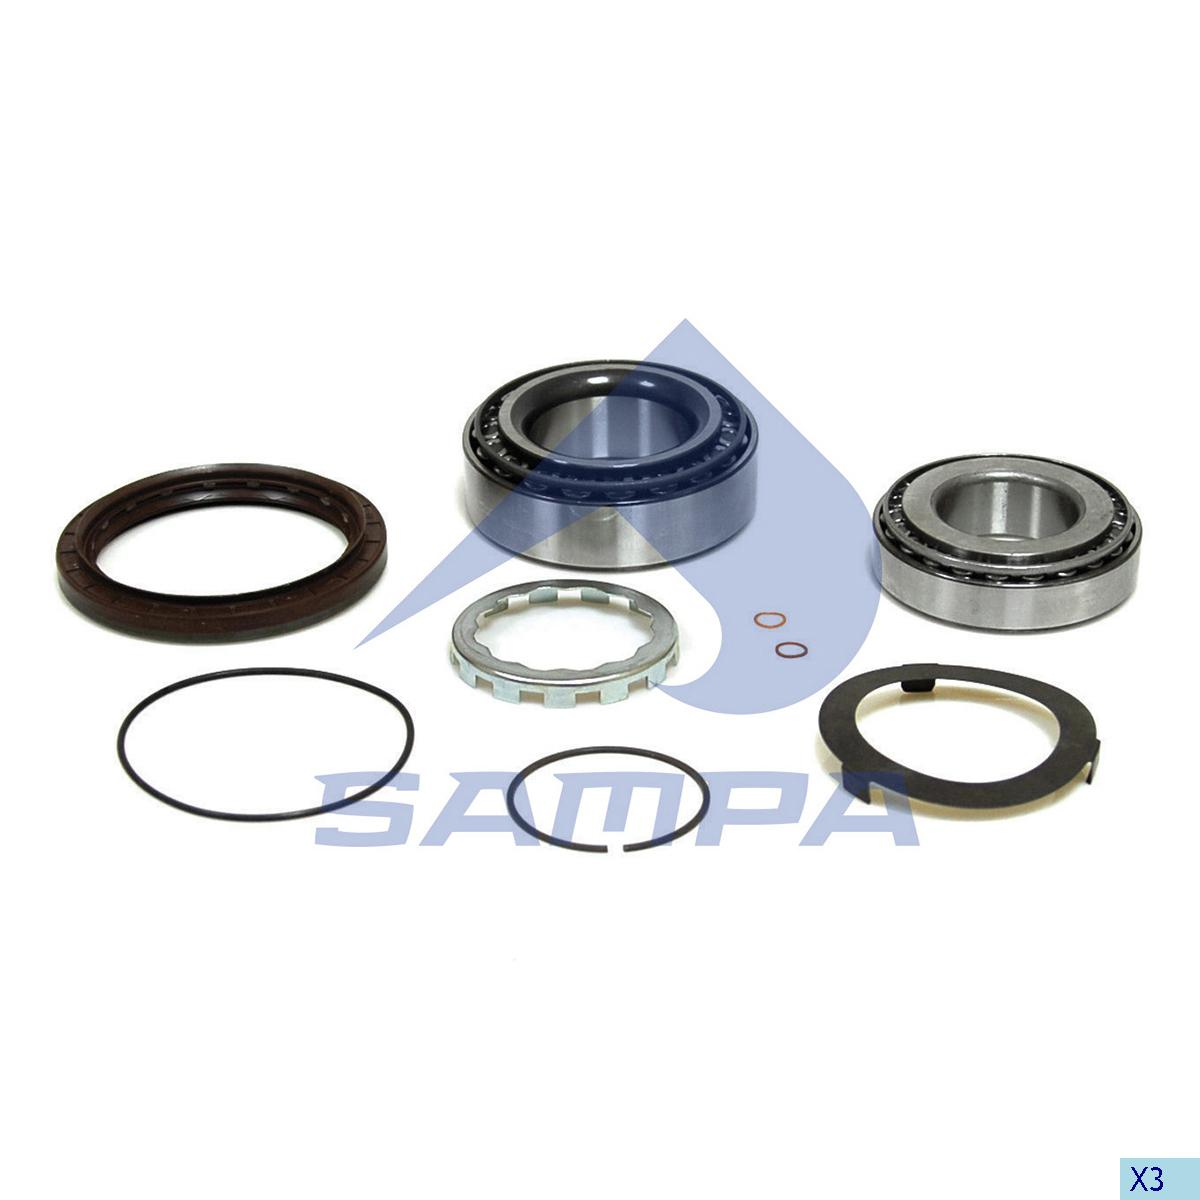 Repair Kit, Wheel Hub, Volvo, Power Unit